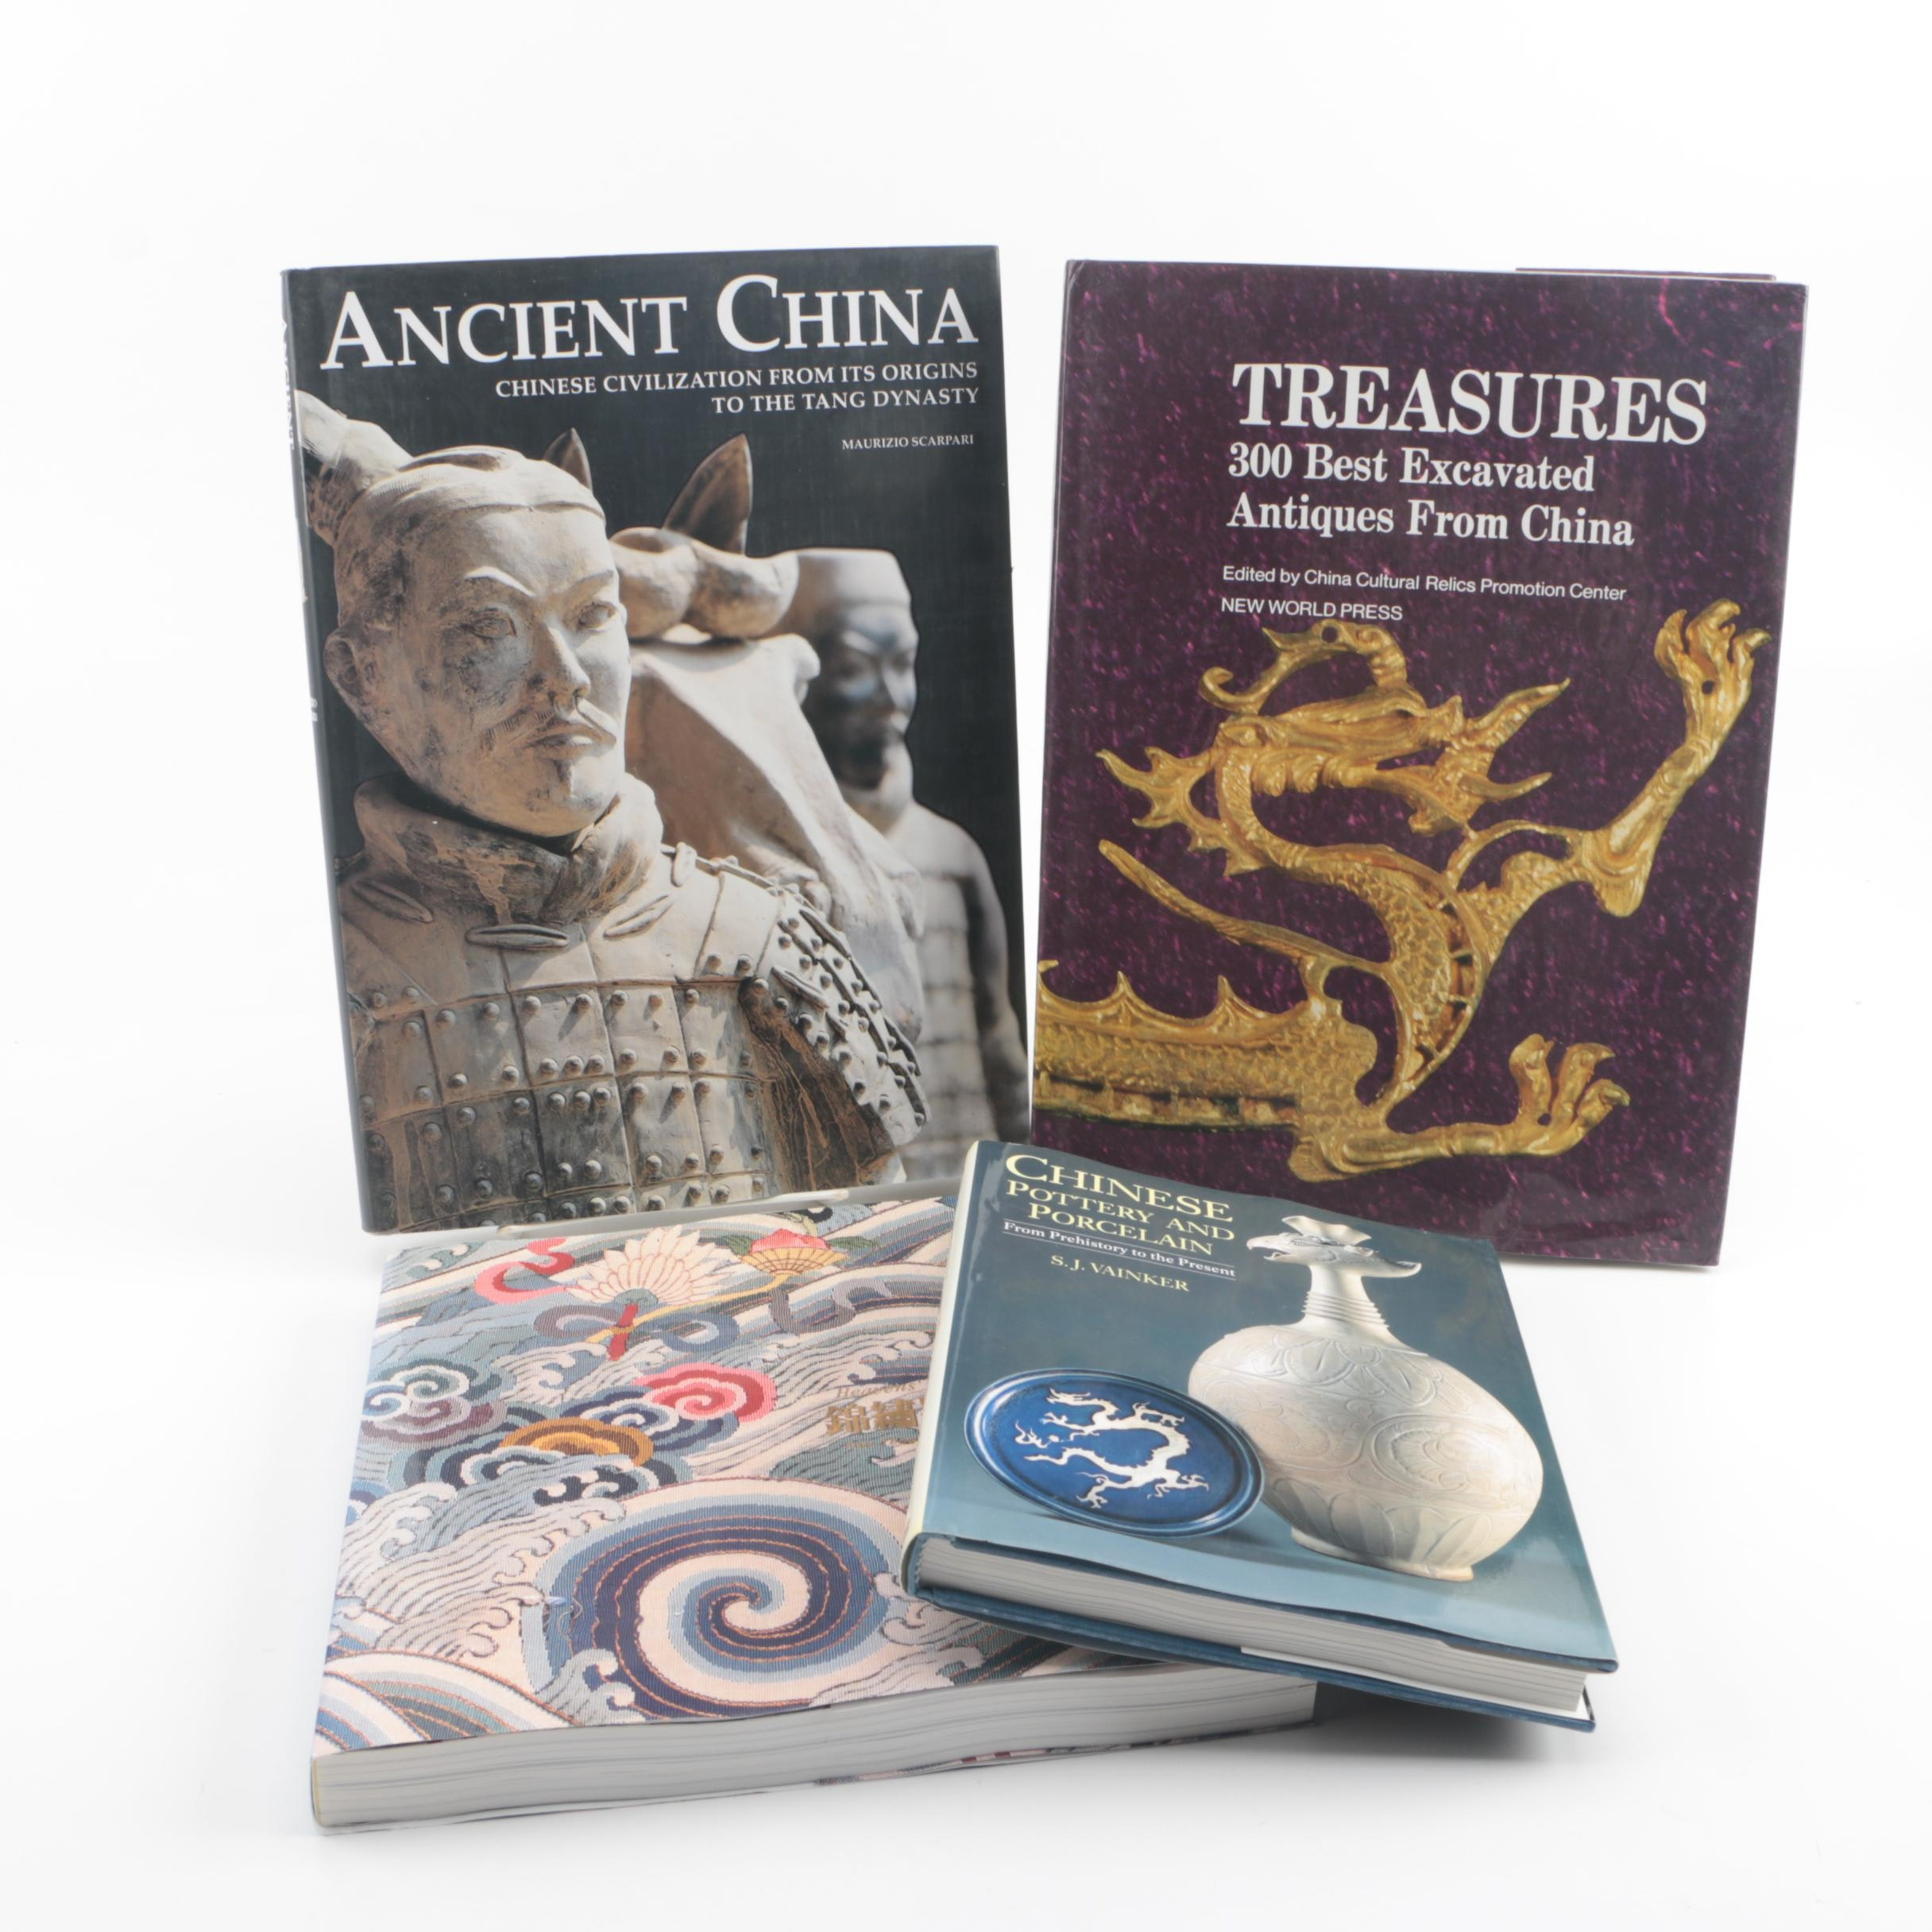 Chinese Art and History Books